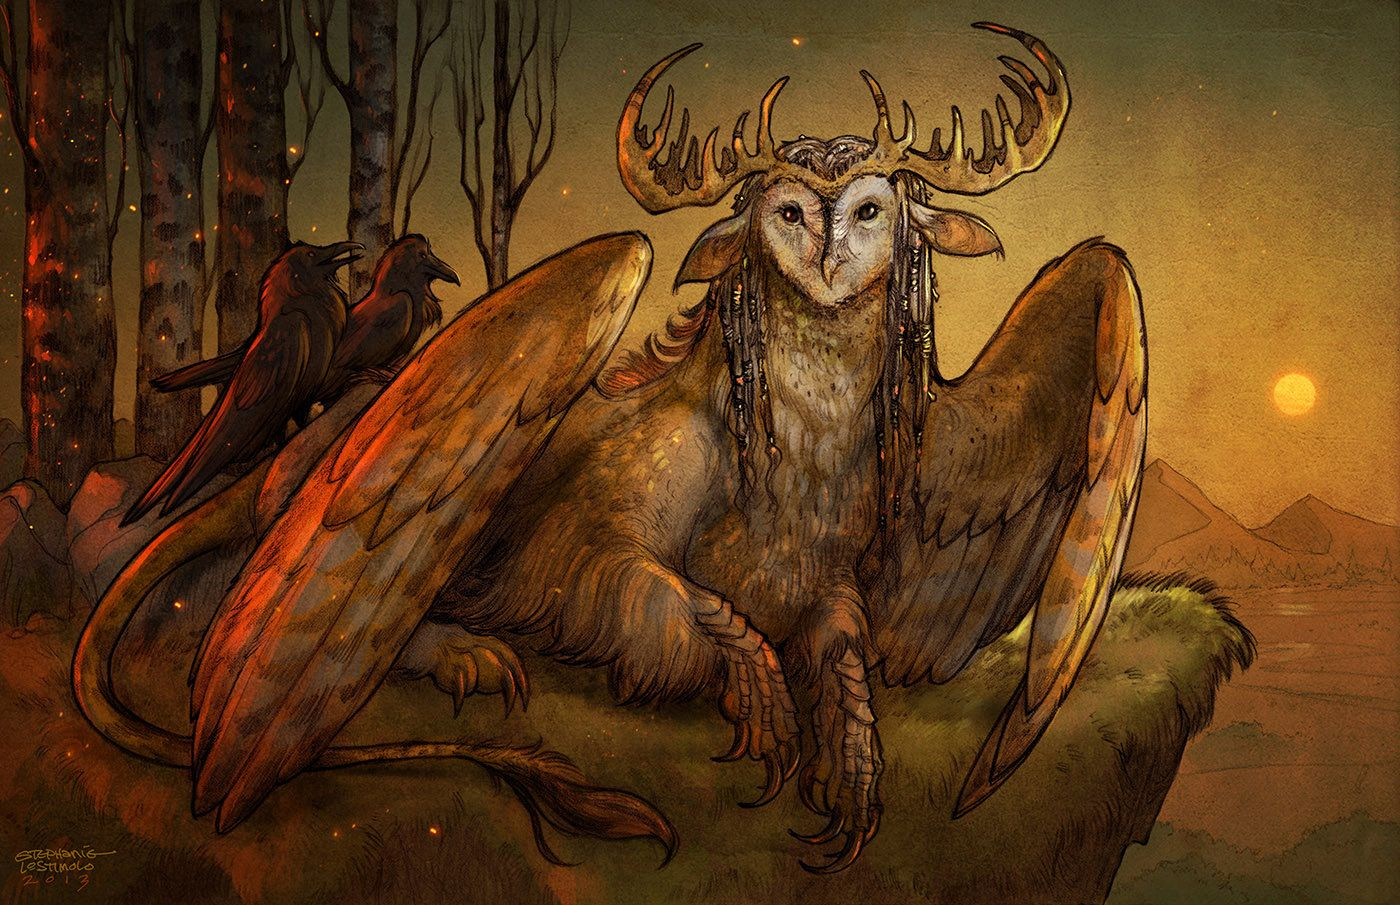 Pin By John Atkinson On Art That Inspires Me Fantasy Creatures Mythical Creatures Art